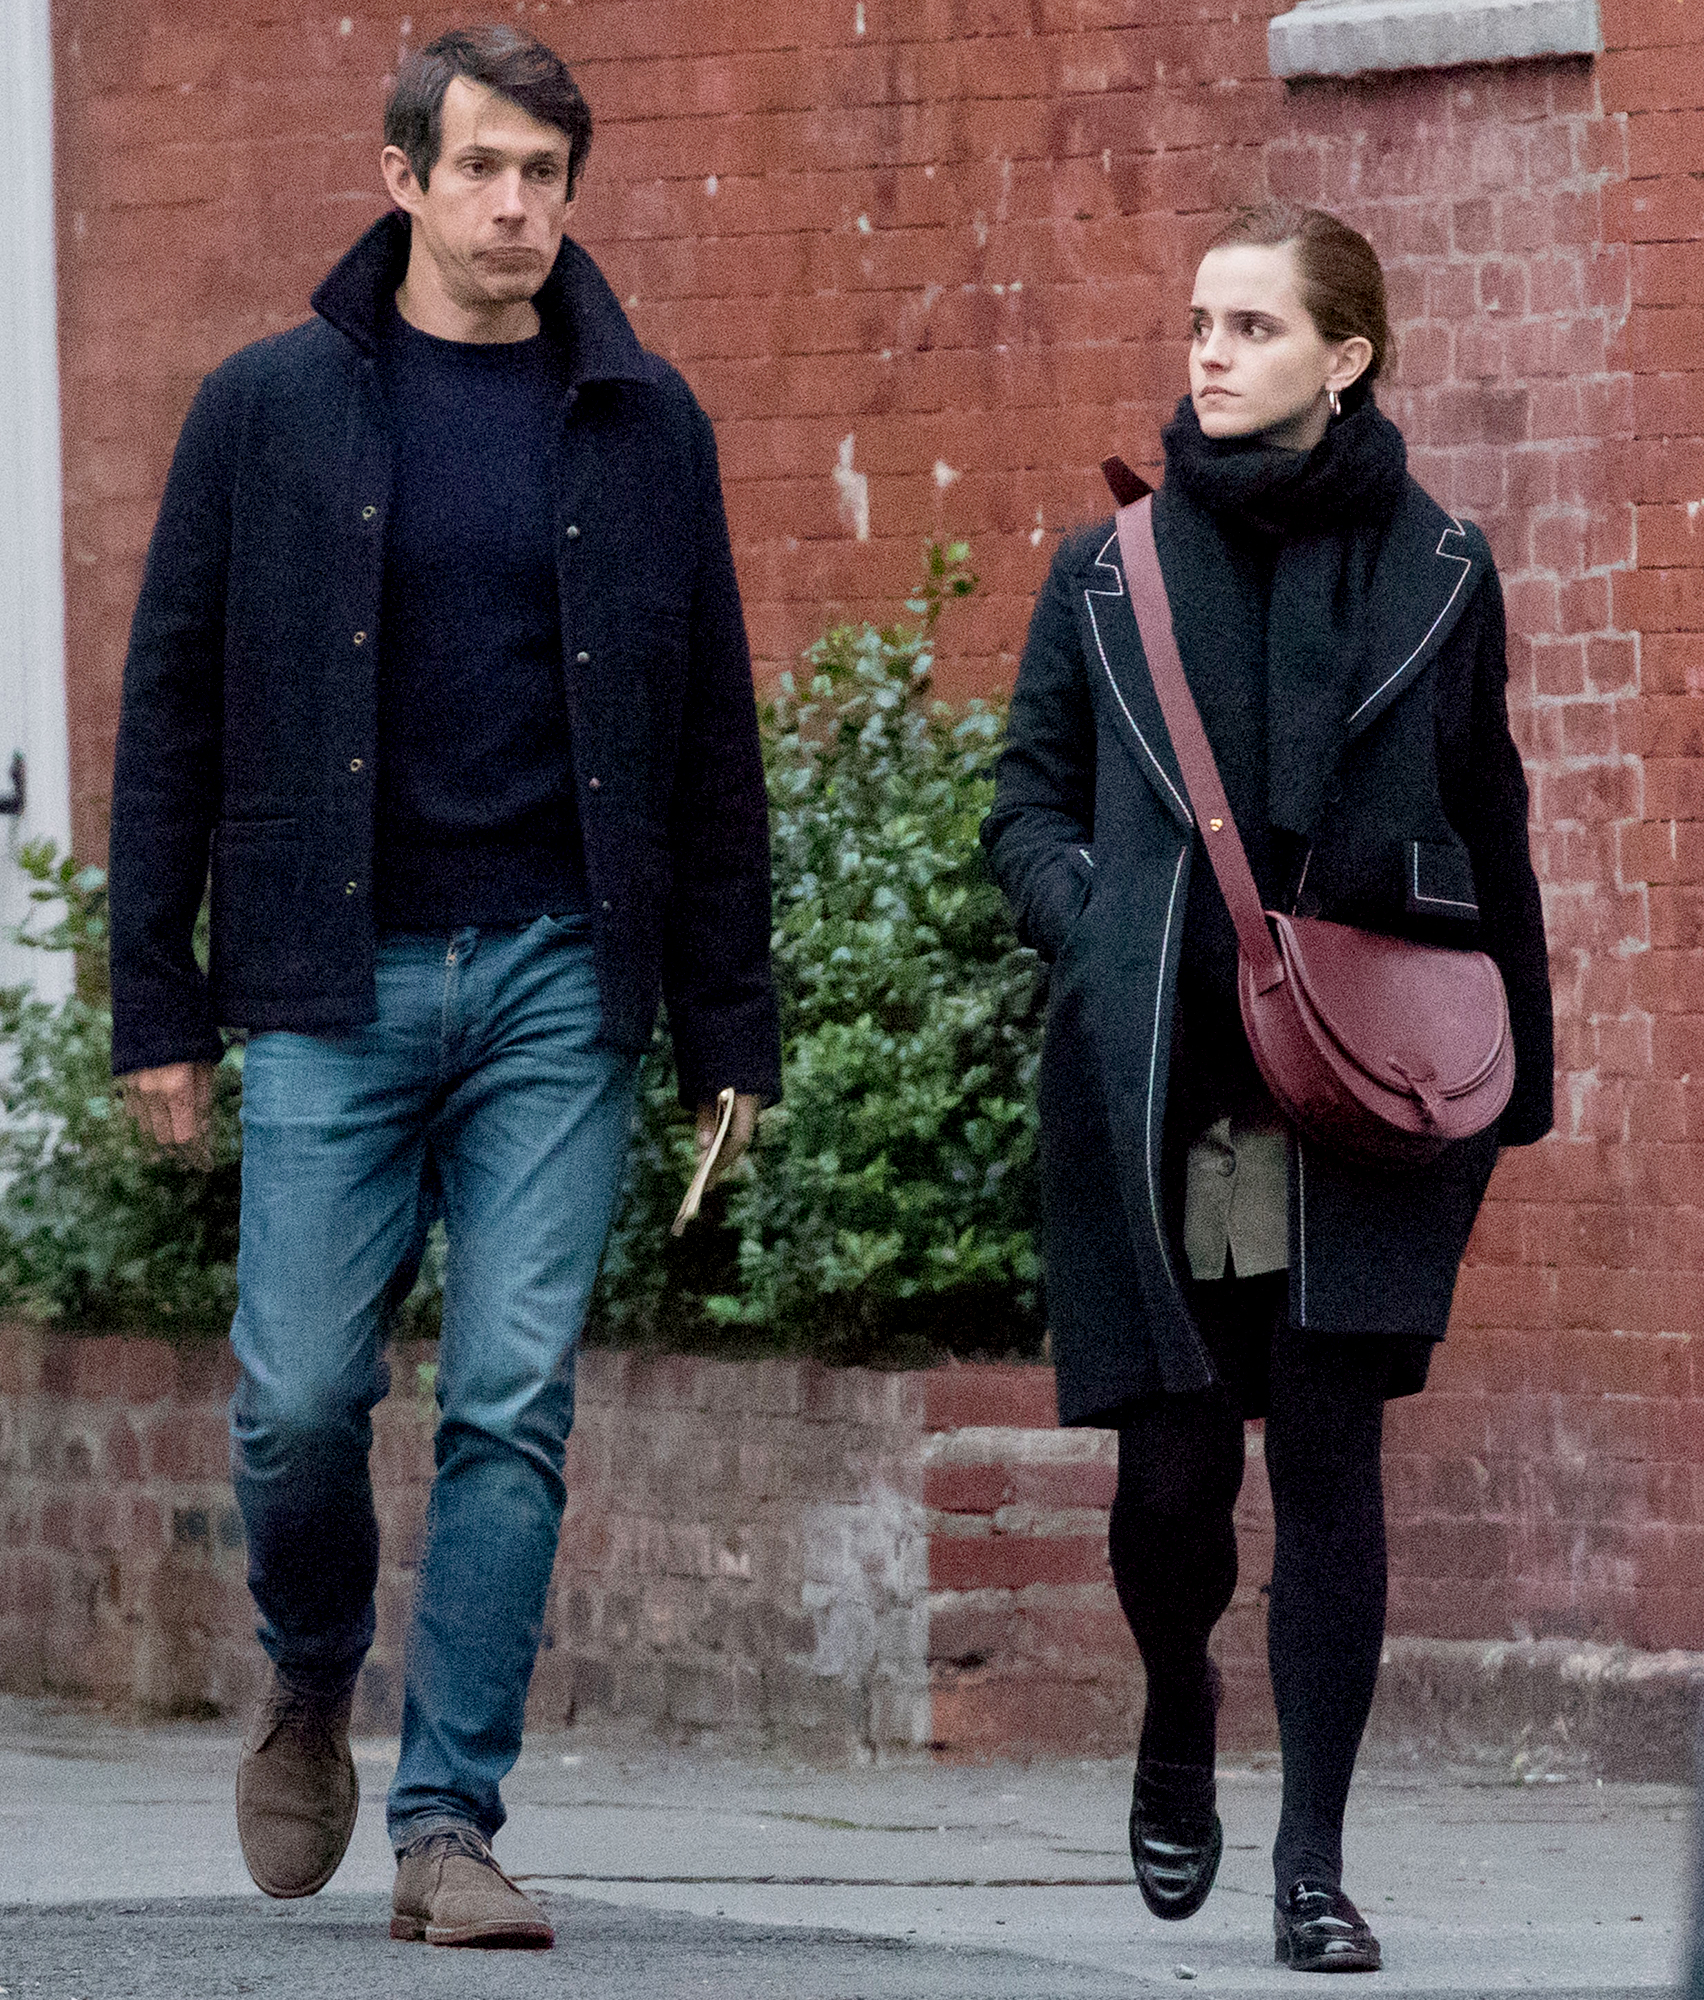 Emma-Watson-and-William-Mack-Knight - The UN Women Goodwill Ambassador and the tech entrepreneur were first spotted together in October 2015, taking in a performance of Hamilton on Broadway. The pair kept their relationship low key for nearly two years before Us exclusively confirmed their split , which happened at some point in 2017, that November.